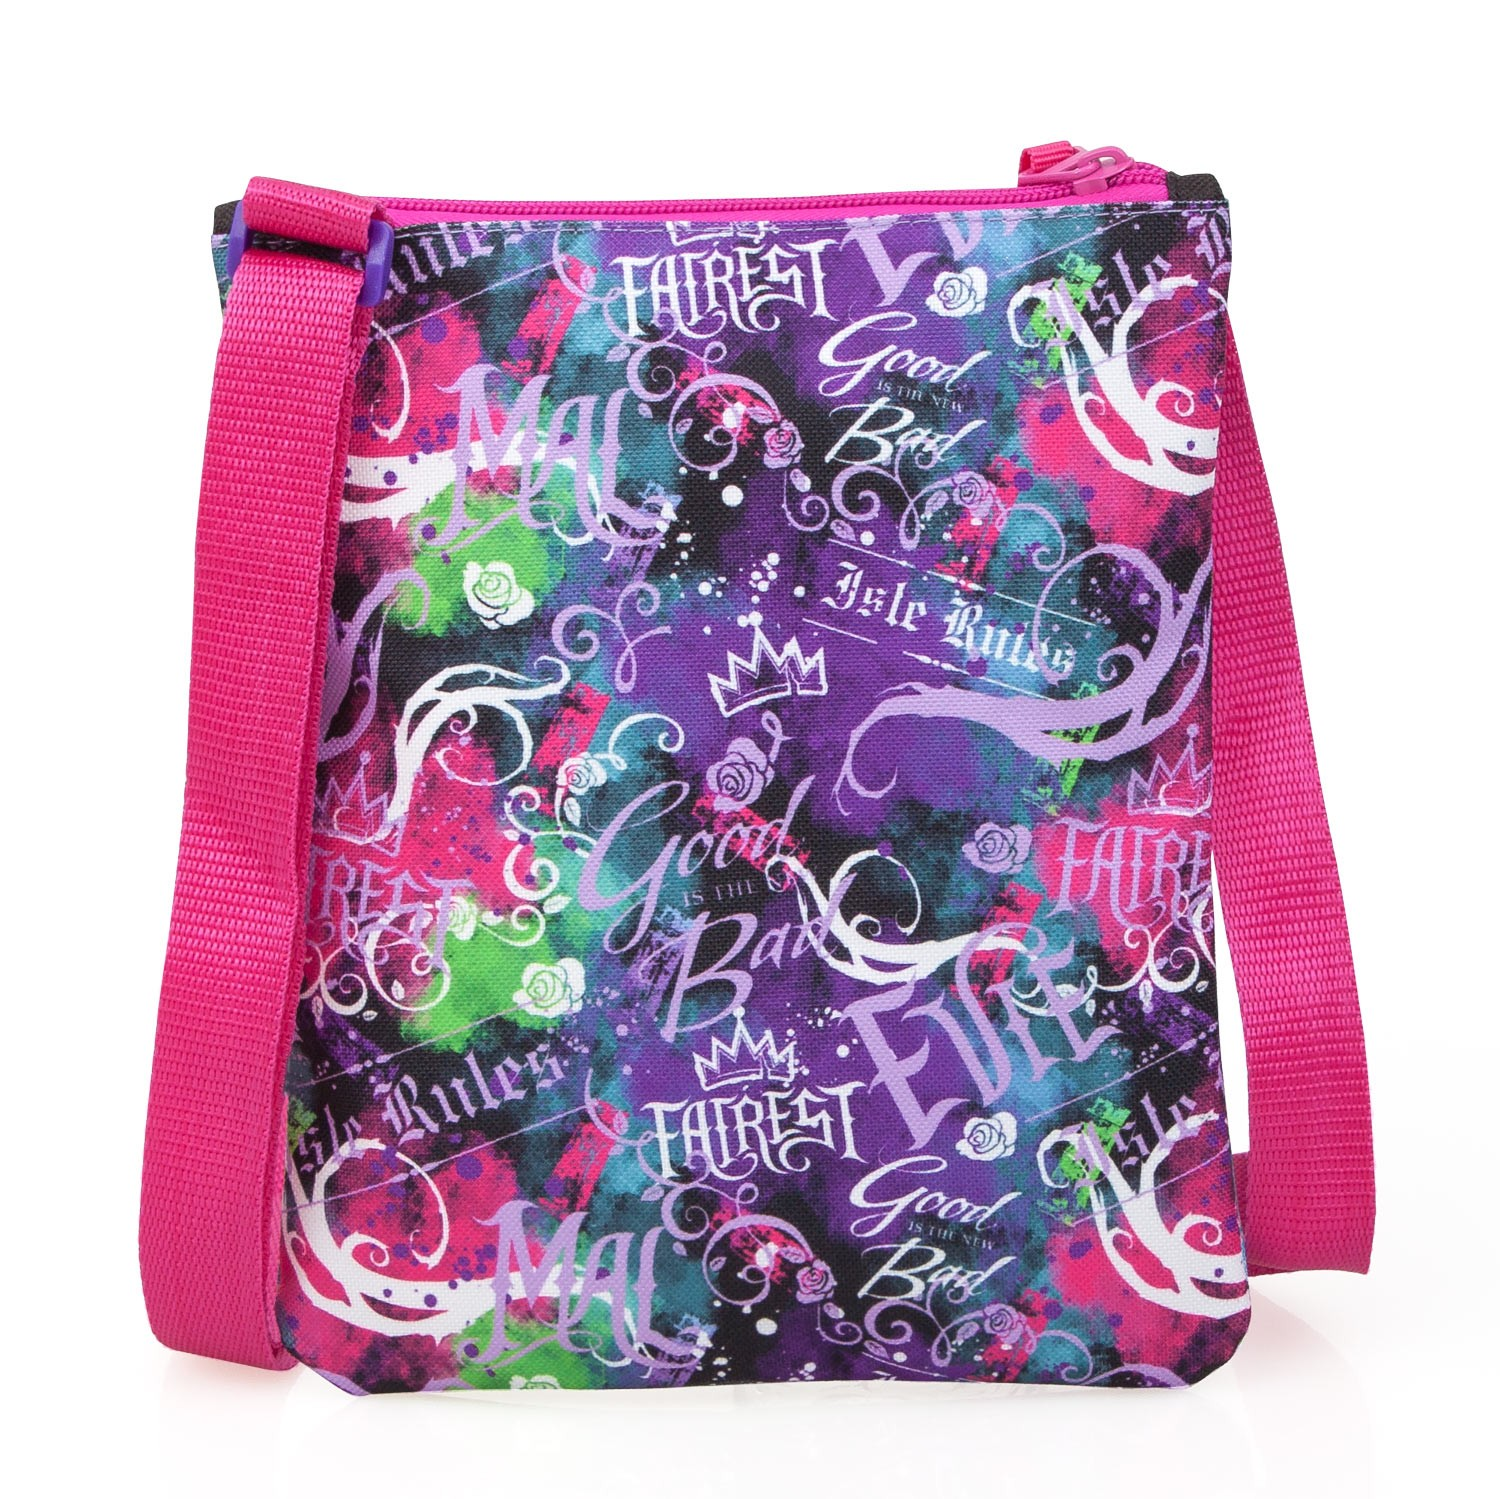 Disney Descendants Shoulder Bag – image 2